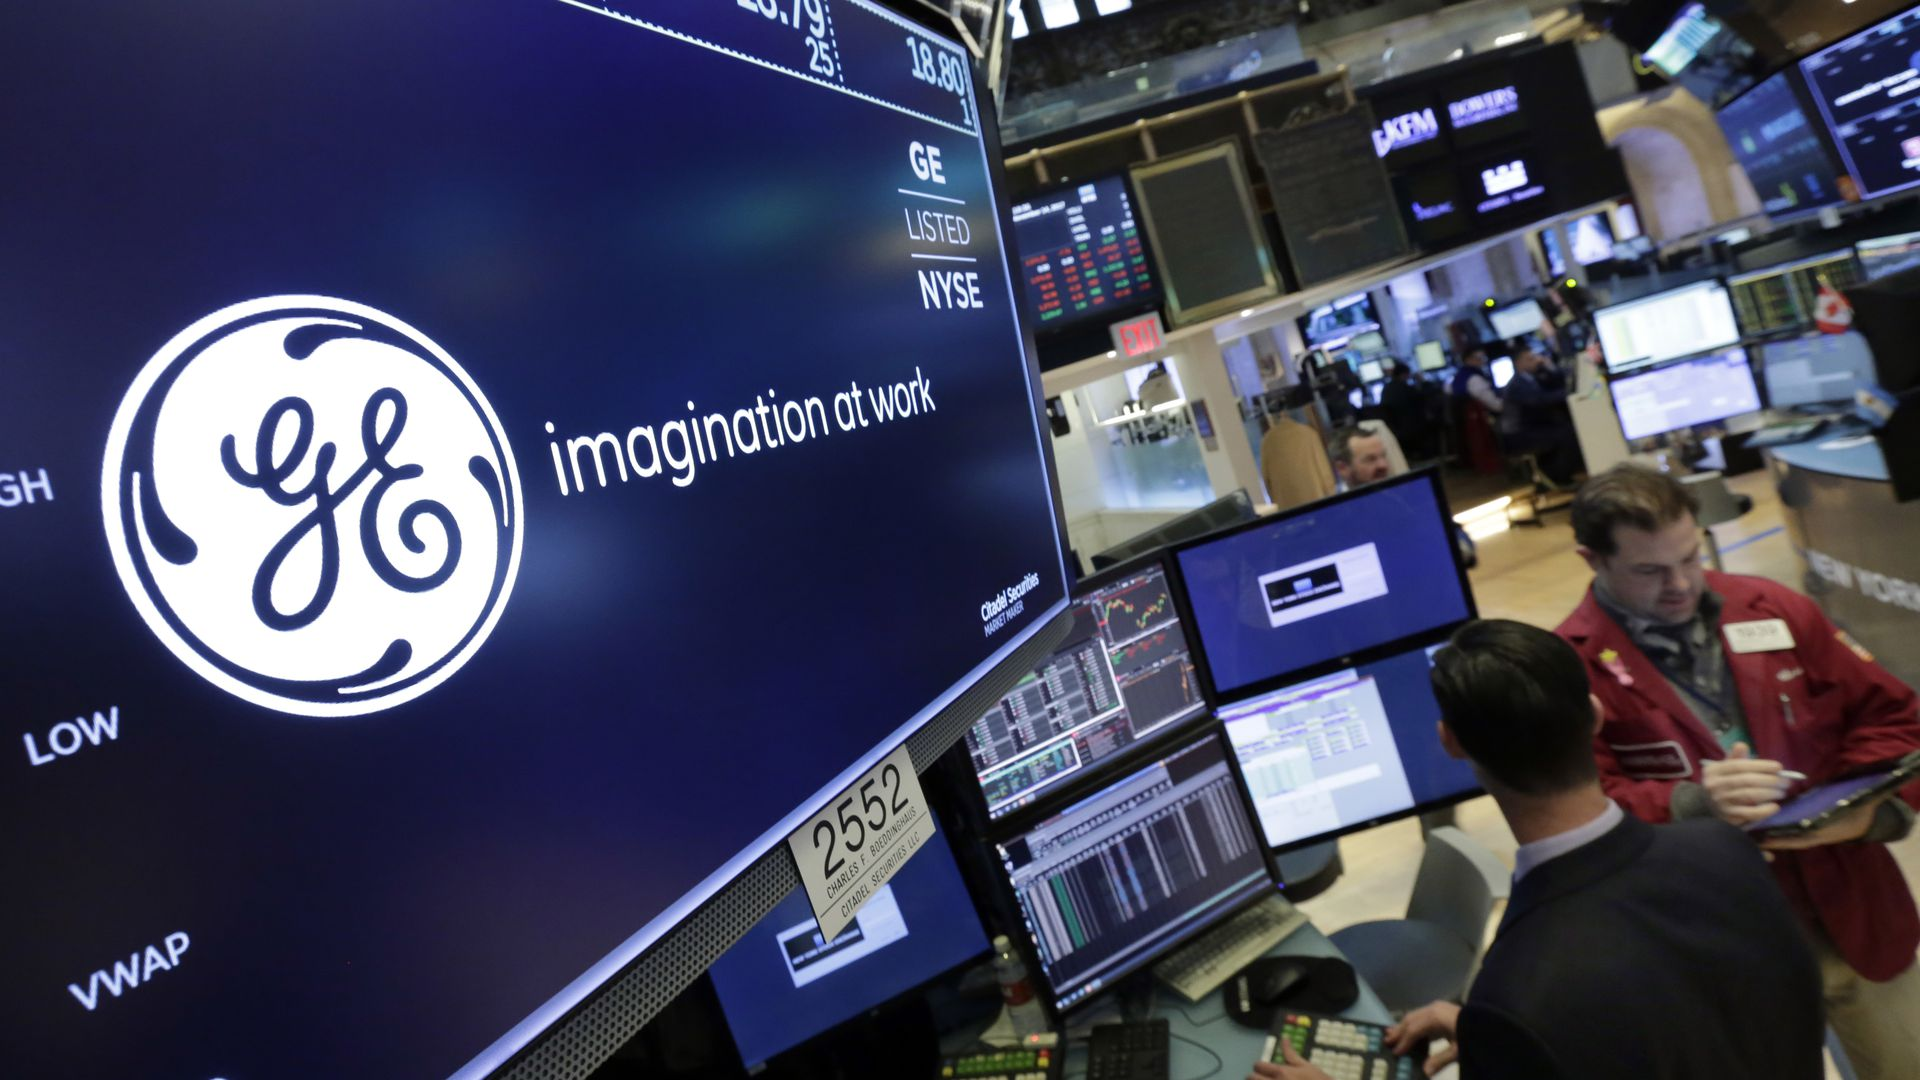 GE logo displayed on screens at a stock exchange, with traders in the background